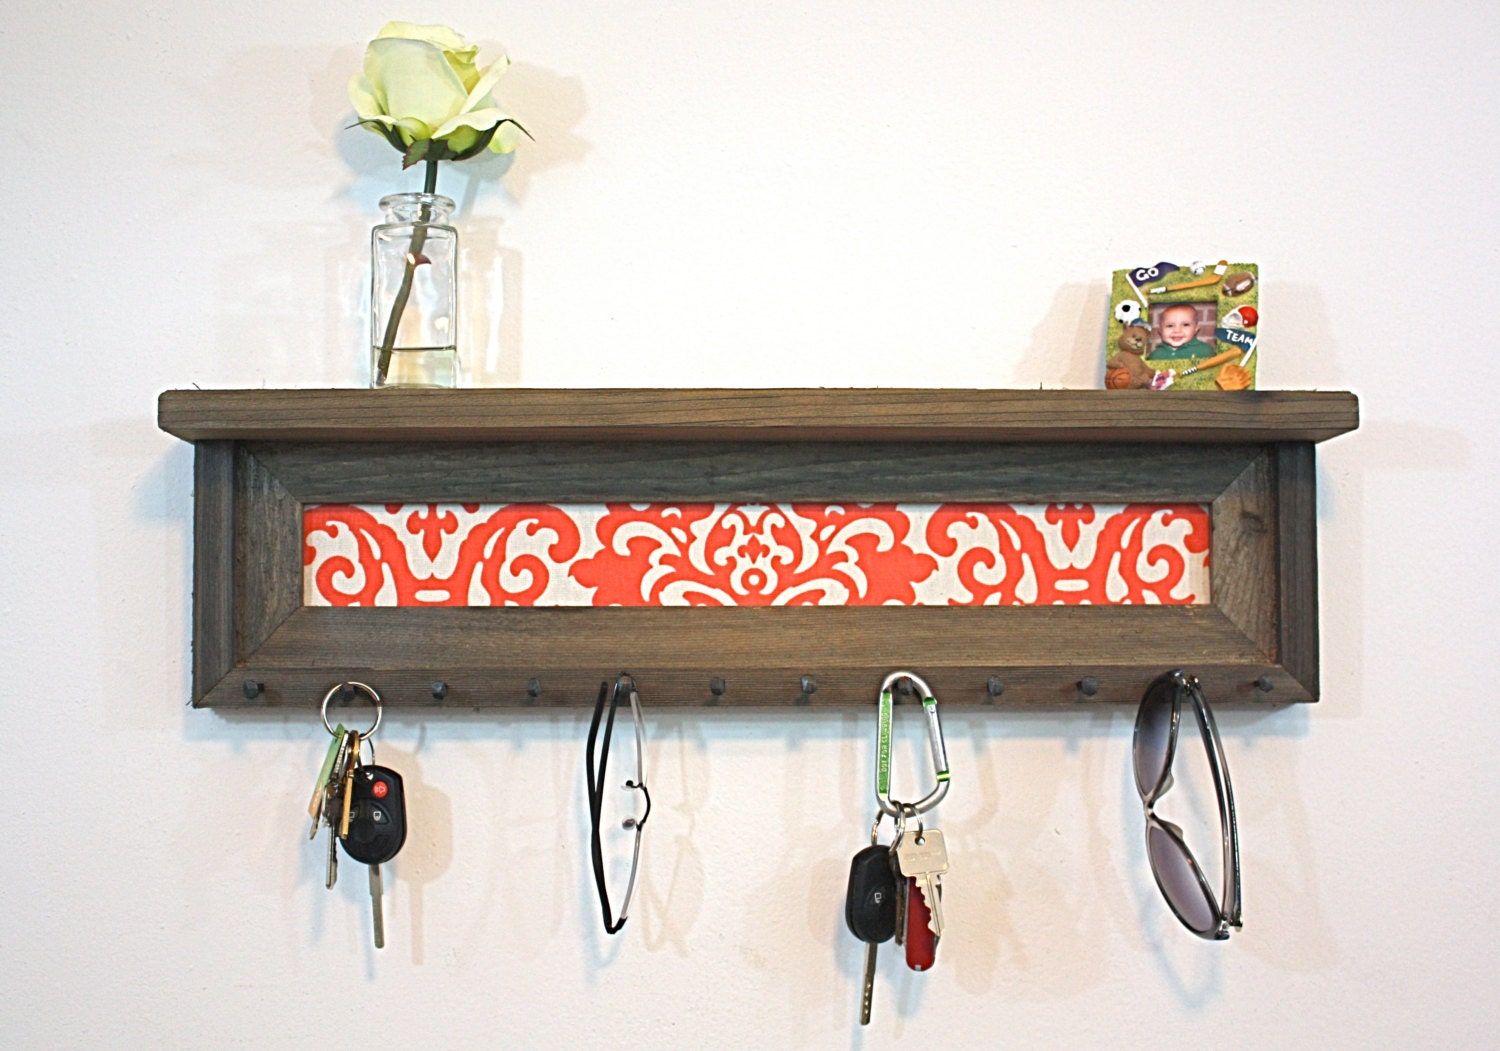 Key Holder Shelf Home Decor Housewarming Gift by hudsonlace